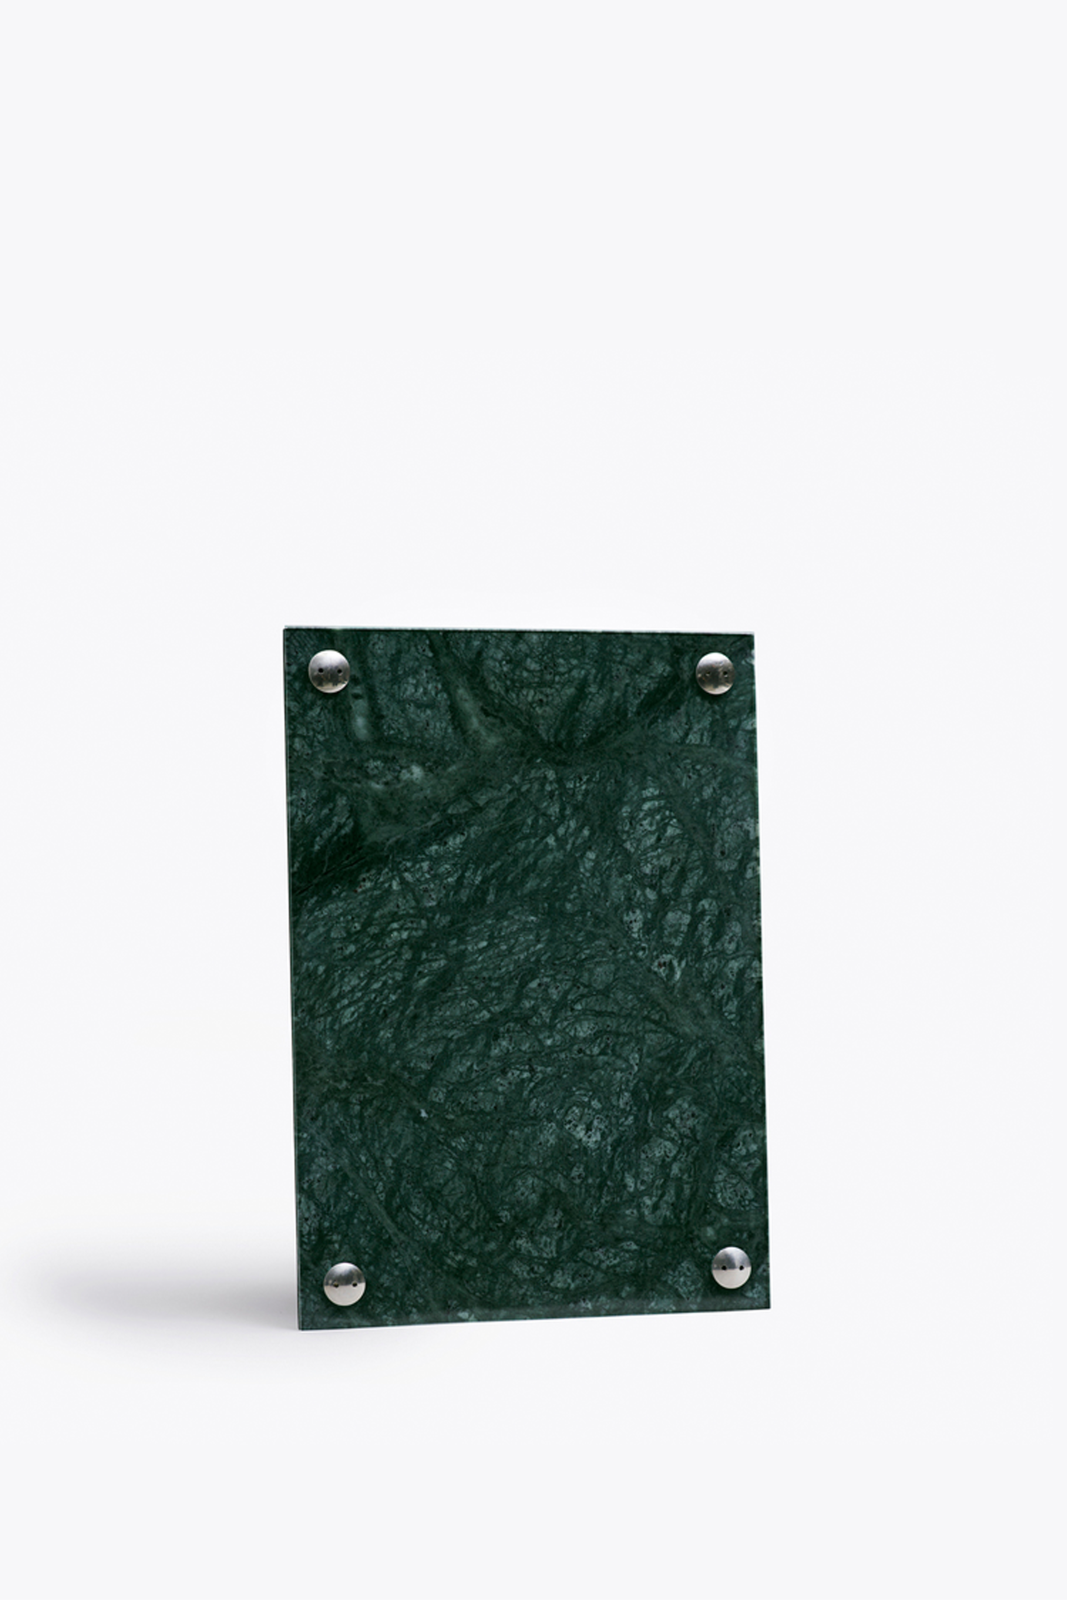 A Frame Pictureframe Indian Green Marble, Medium (A4)